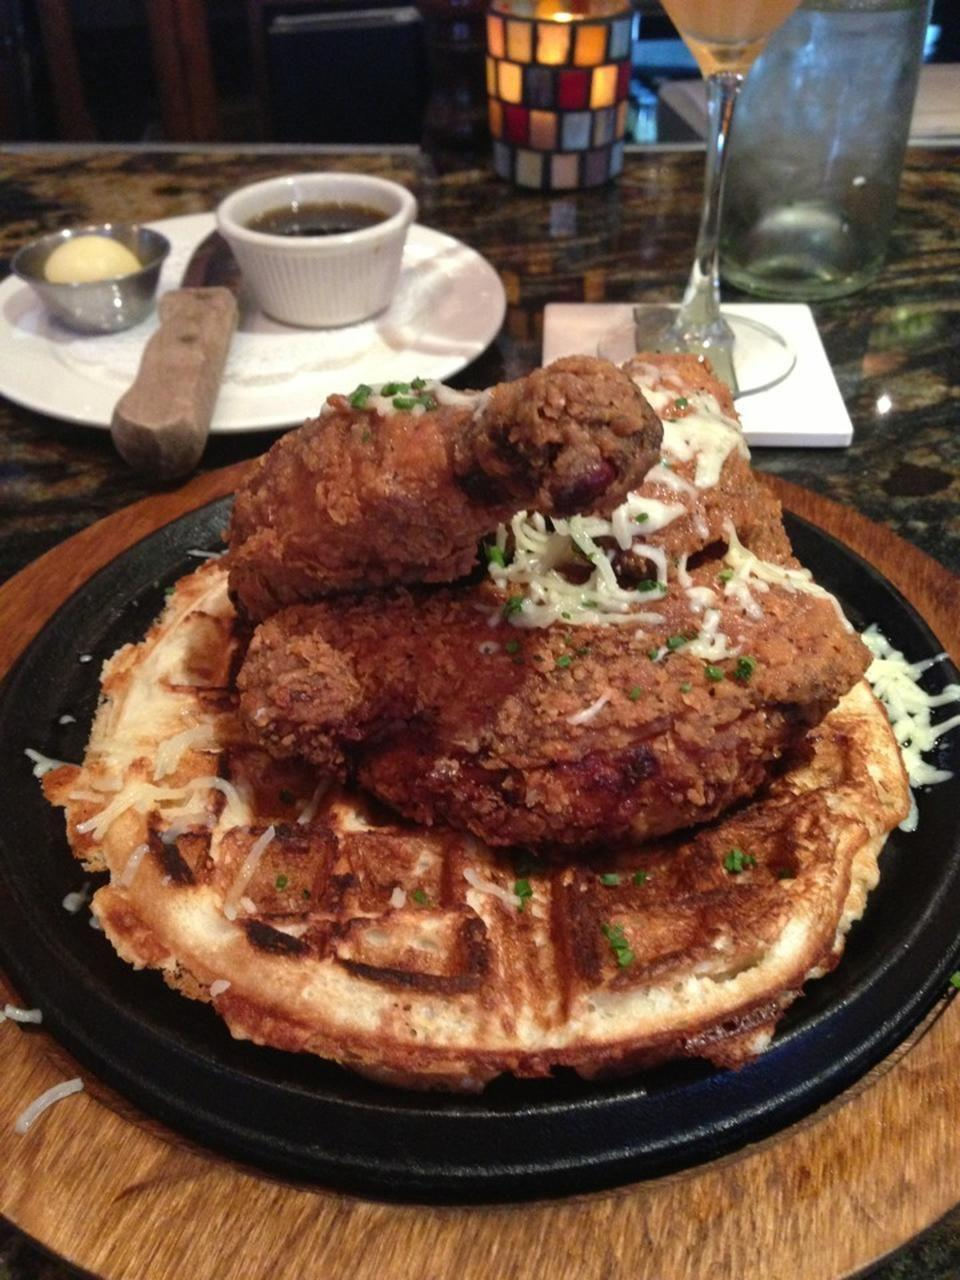 """<p><a href=""""https://www.tripadvisor.com/Restaurant_Review-g35394-d2041291-Reviews-Fork-Boise_Idaho.html"""" rel=""""nofollow noopener"""" target=""""_blank"""" data-ylk=""""slk:Fork"""" class=""""link rapid-noclick-resp"""">Fork</a>, Boise</p><p>Fork <span class=""""entity tip_taste_match"""">classes</span> up <span class=""""entity tip_taste_match"""">comfort food</span>. Chicken<span class=""""entity tip_taste_match""""> and waffles</span> with a gourmet twist.<span class=""""redactor-invisible-space""""> - Foursquare user <a href=""""https://foursquare.com/boiseweekly"""" rel=""""nofollow noopener"""" target=""""_blank"""" data-ylk=""""slk:Boise Weekly"""" class=""""link rapid-noclick-resp"""">Boise Weekly</a></span><br></p>"""